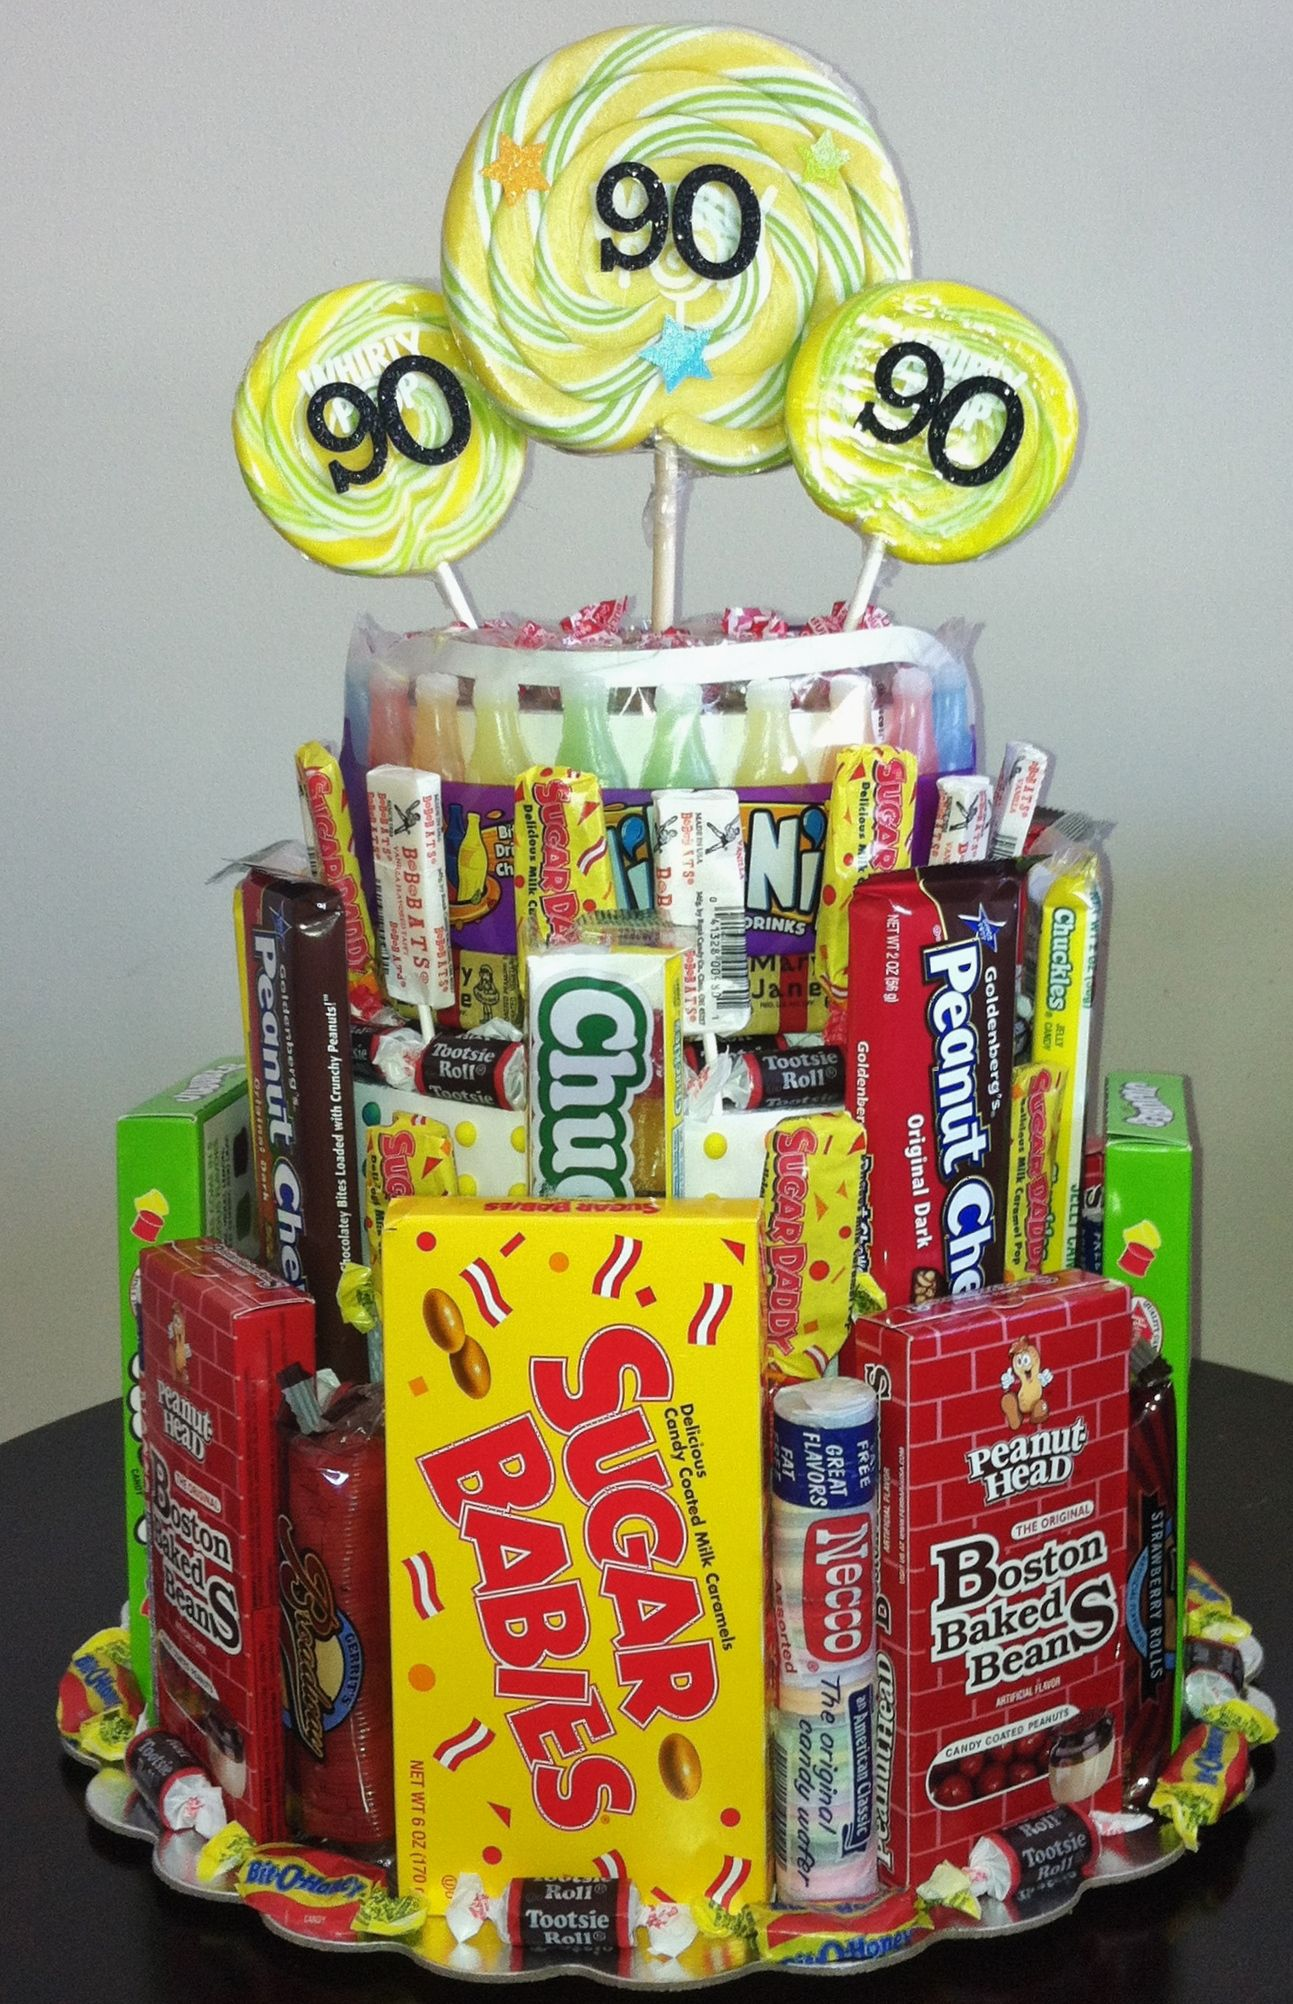 Th birthday centerpiece filled with candy from the